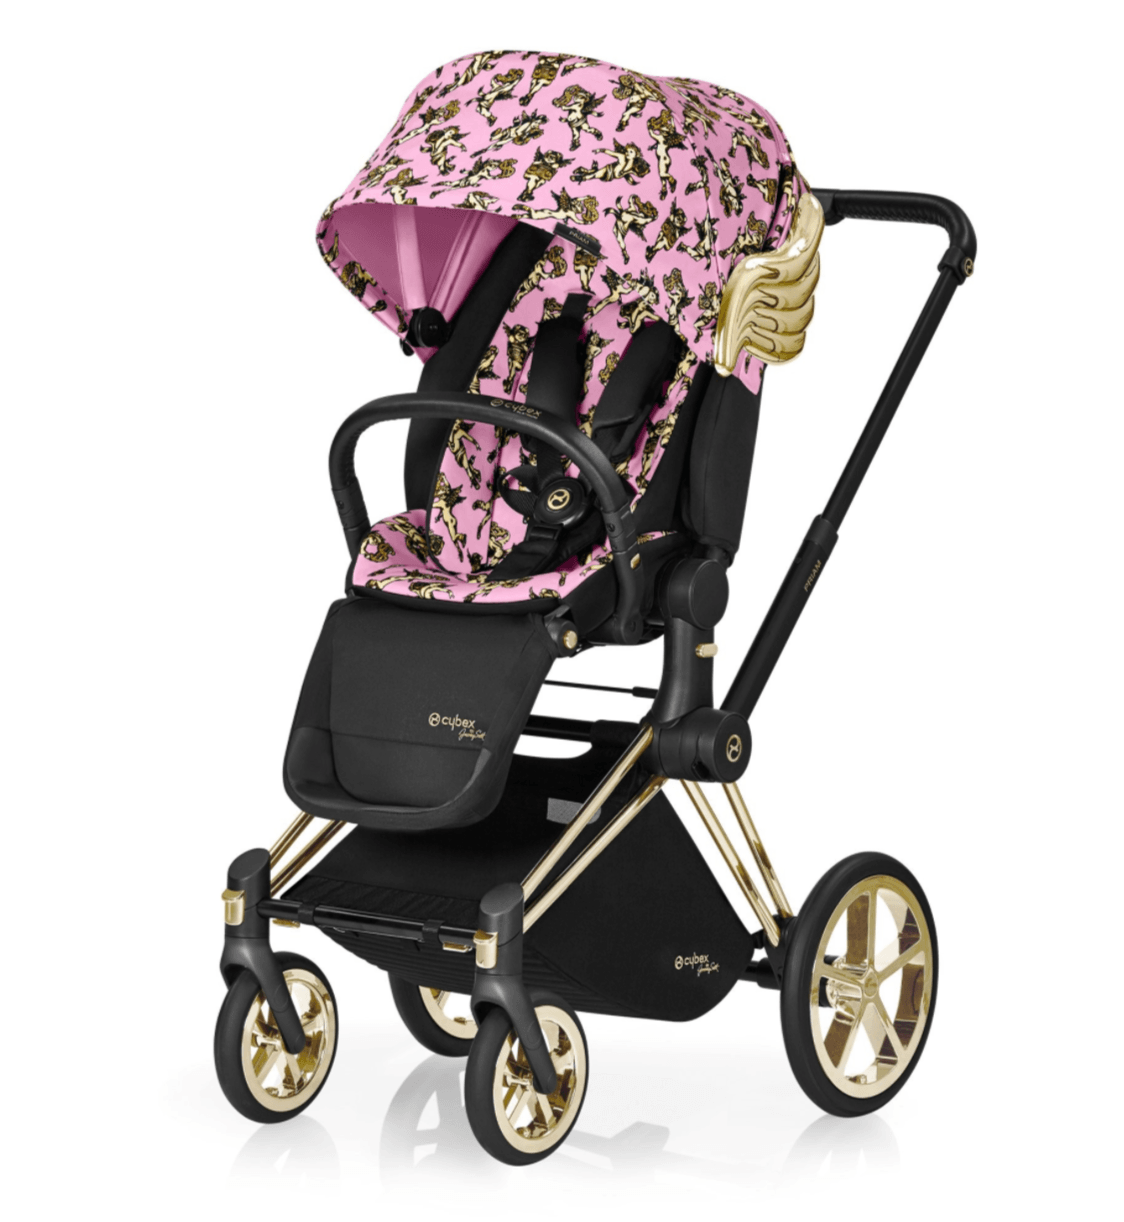 Priam Stroller by Jeremy Scott - Pink